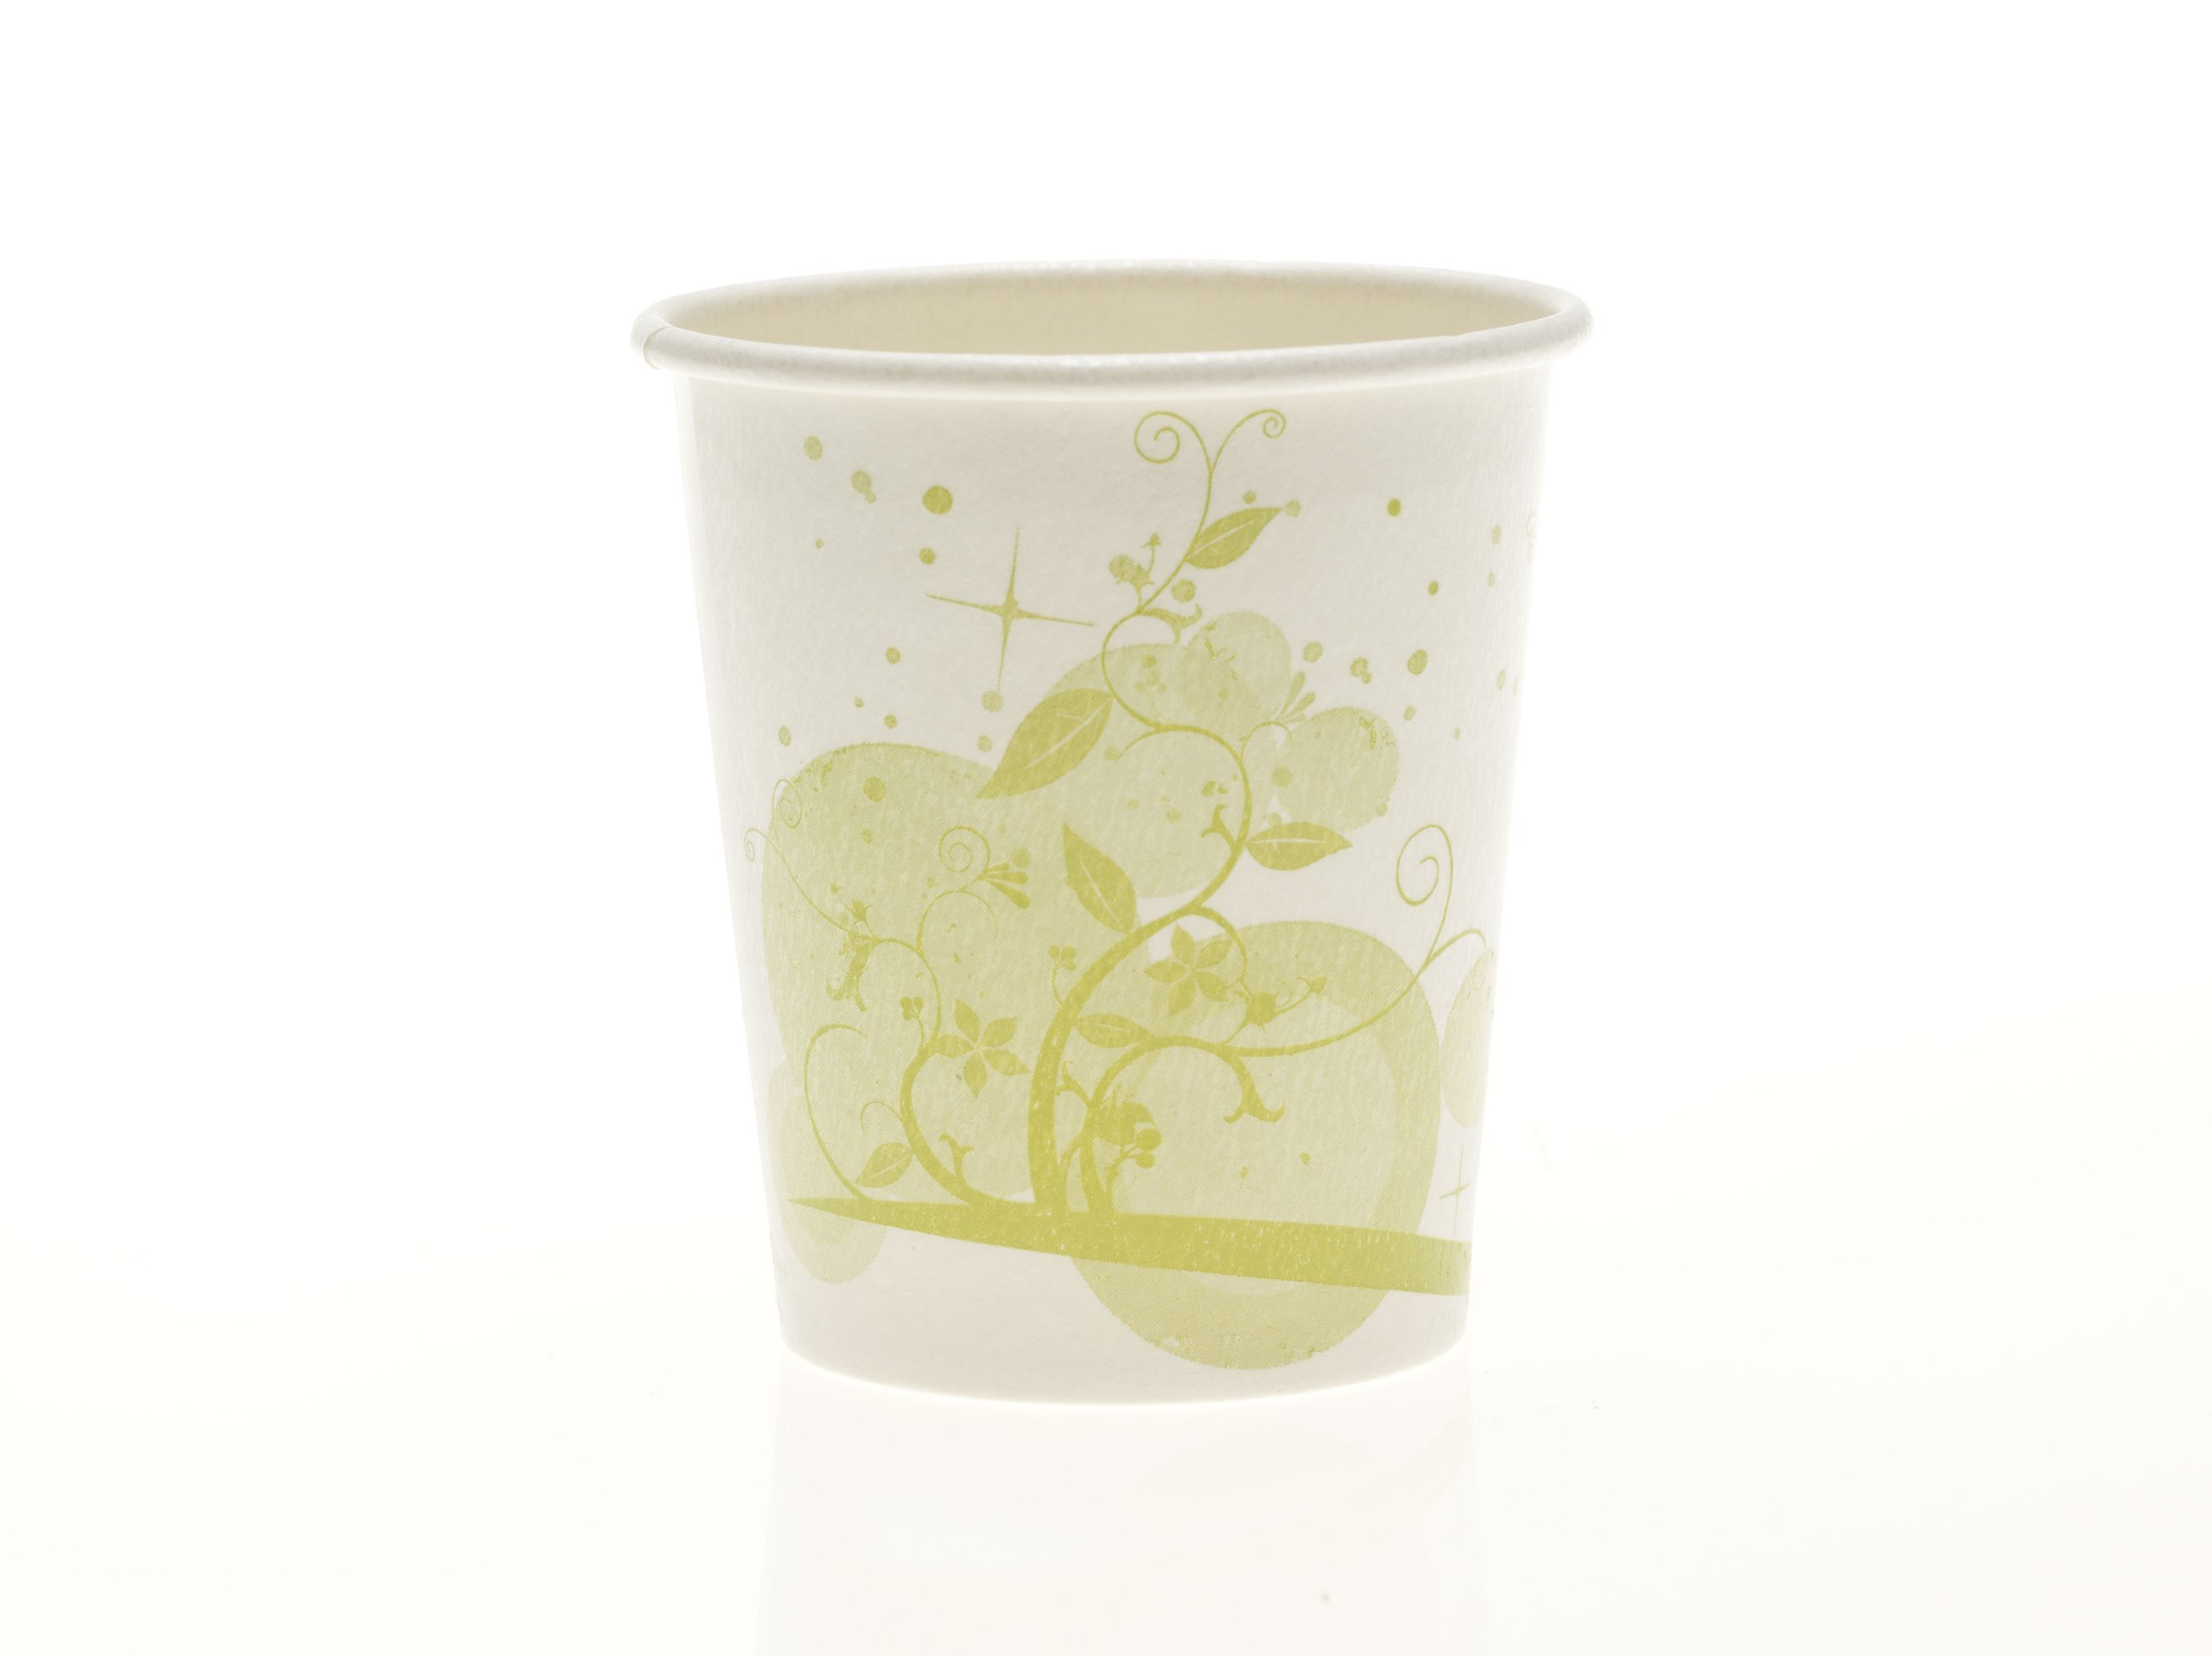 Medline NON05007 Disposable Cold Paper Drinking Cup, Green Nature Design, 7 oz (Pack of 2000)